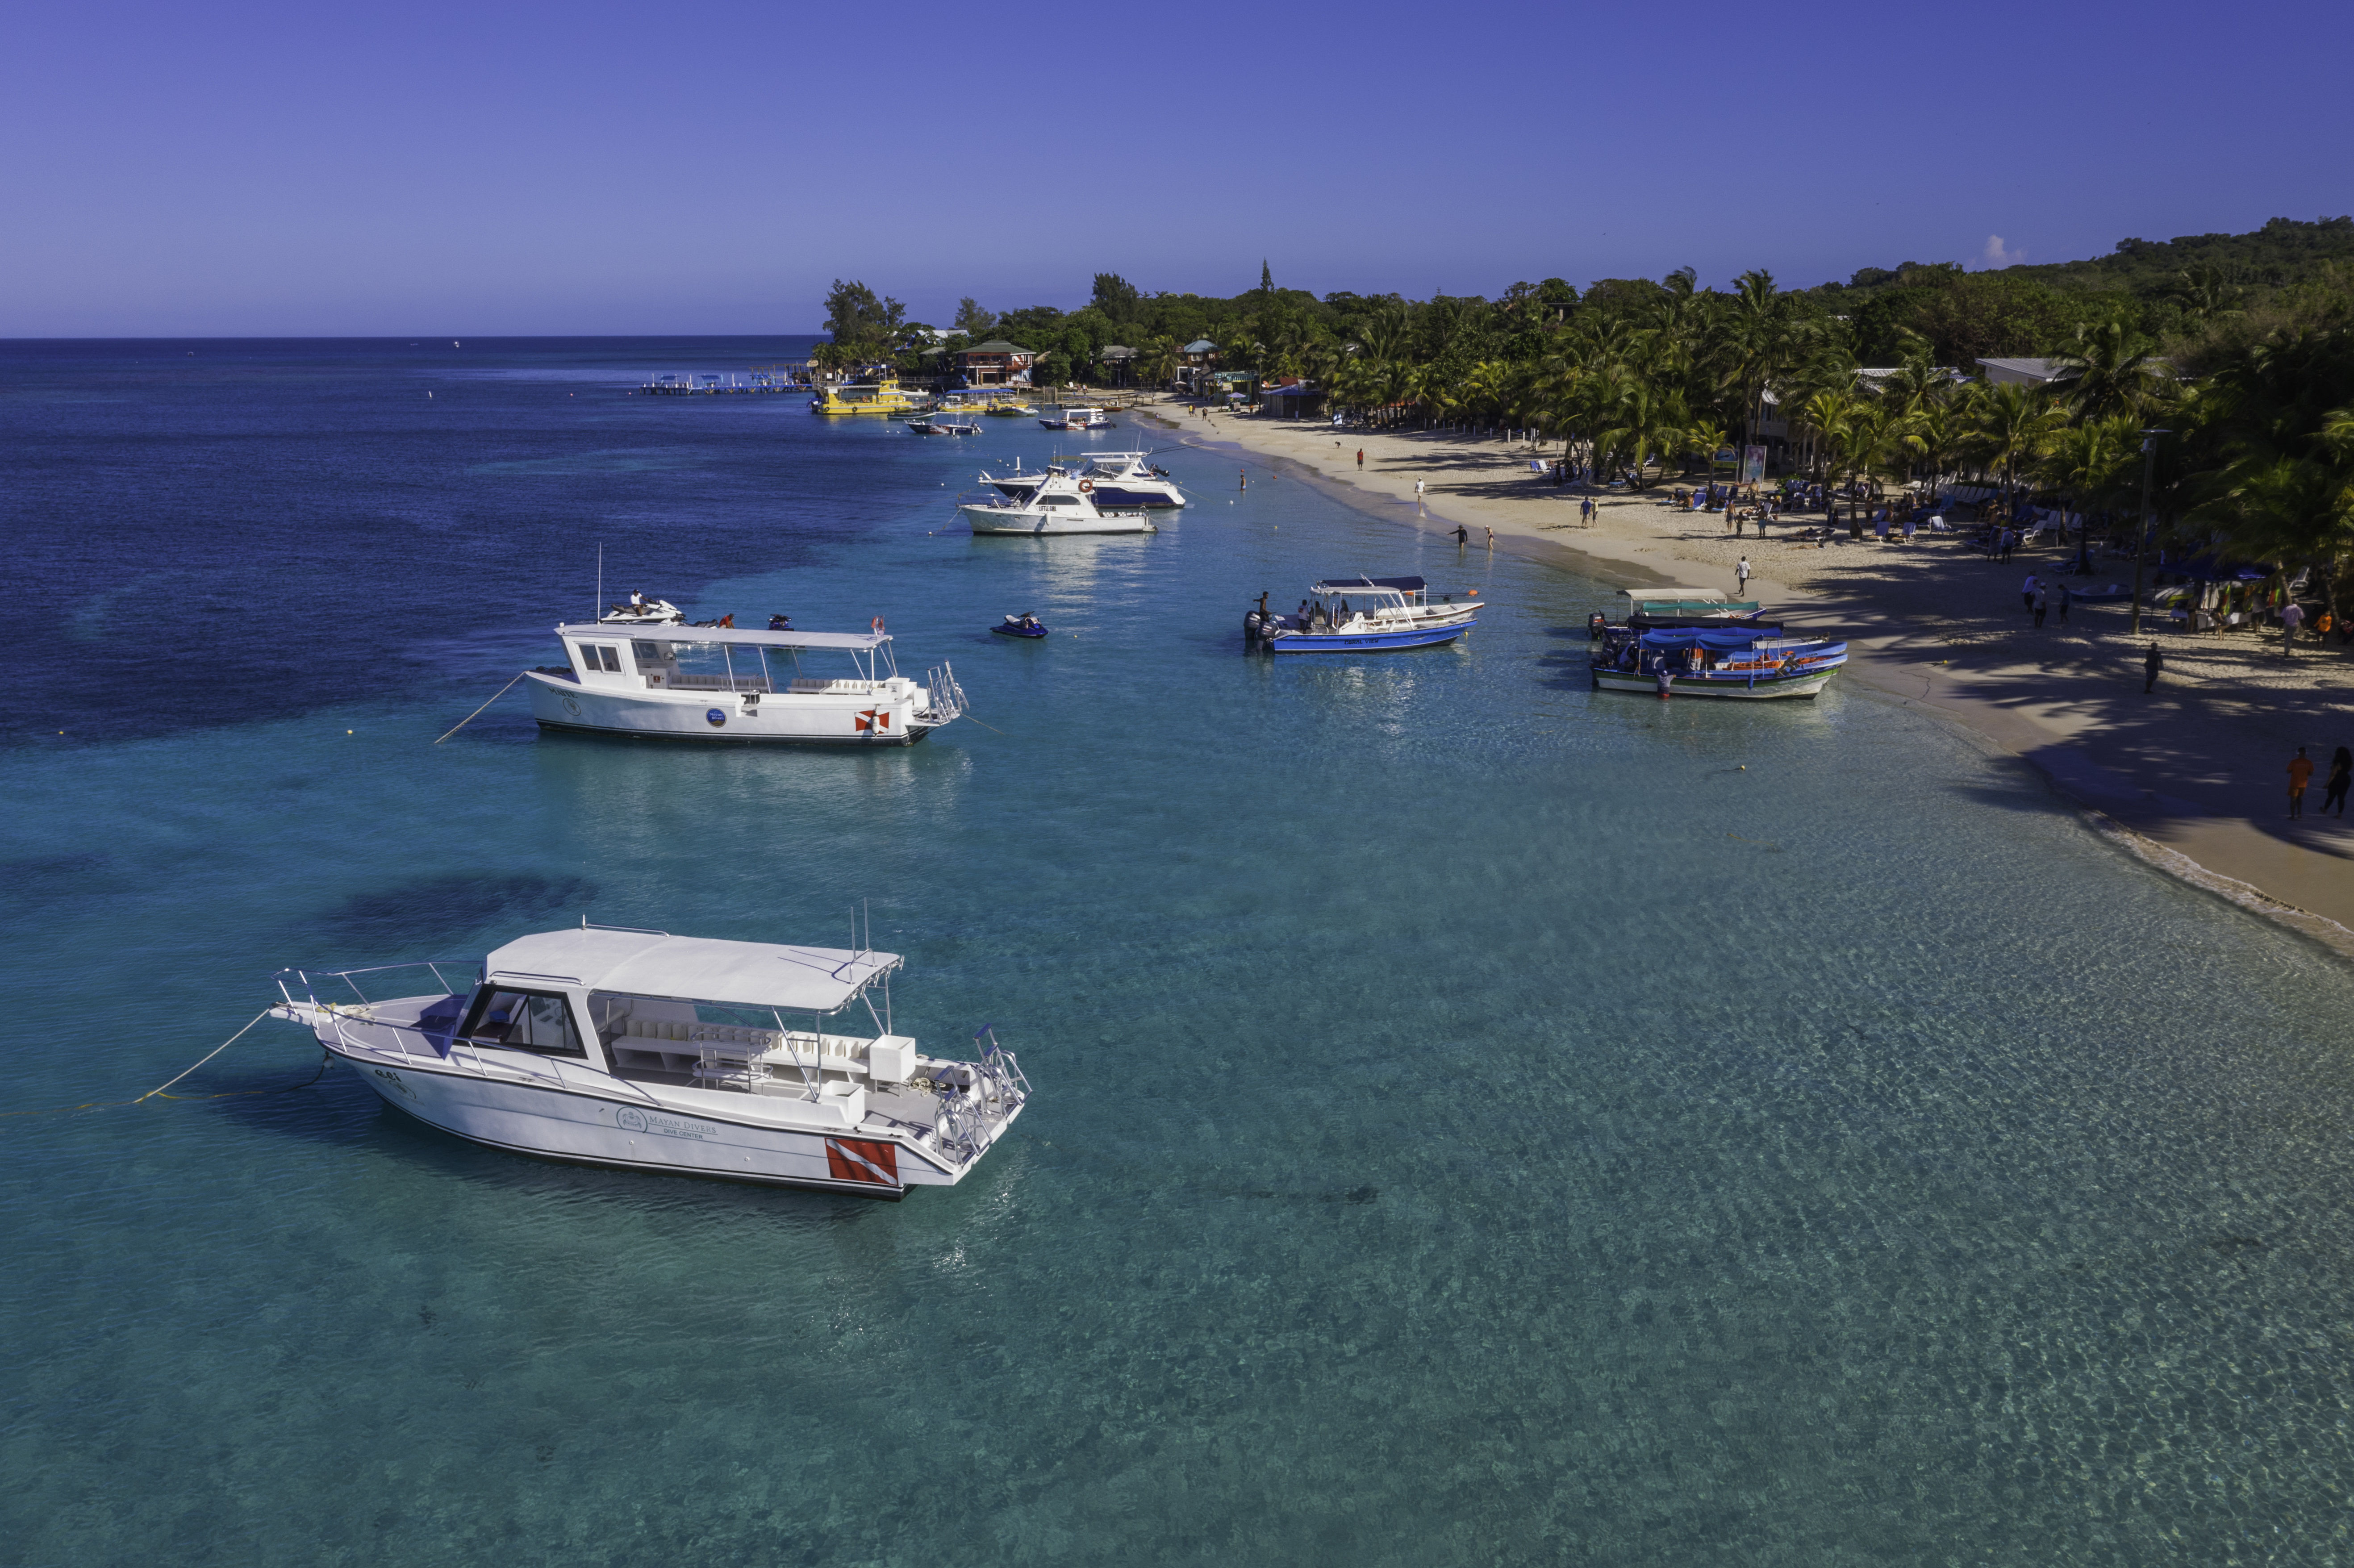 Small white scuba diving boats on clear turquoise waters next to beach in Honduras.